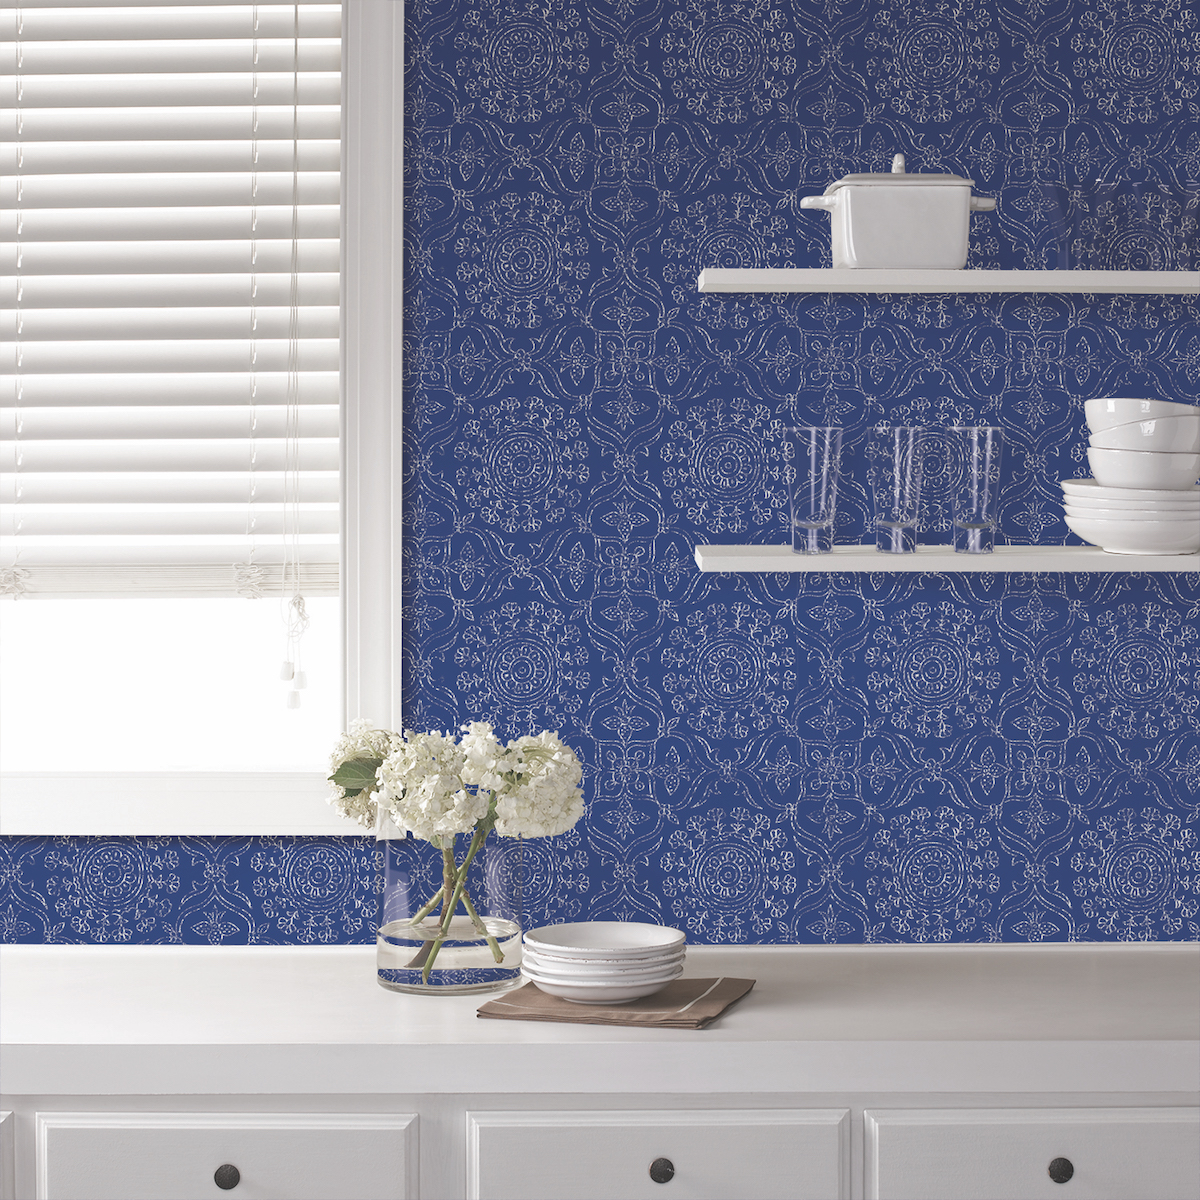 kitchen shelves with wallpaper